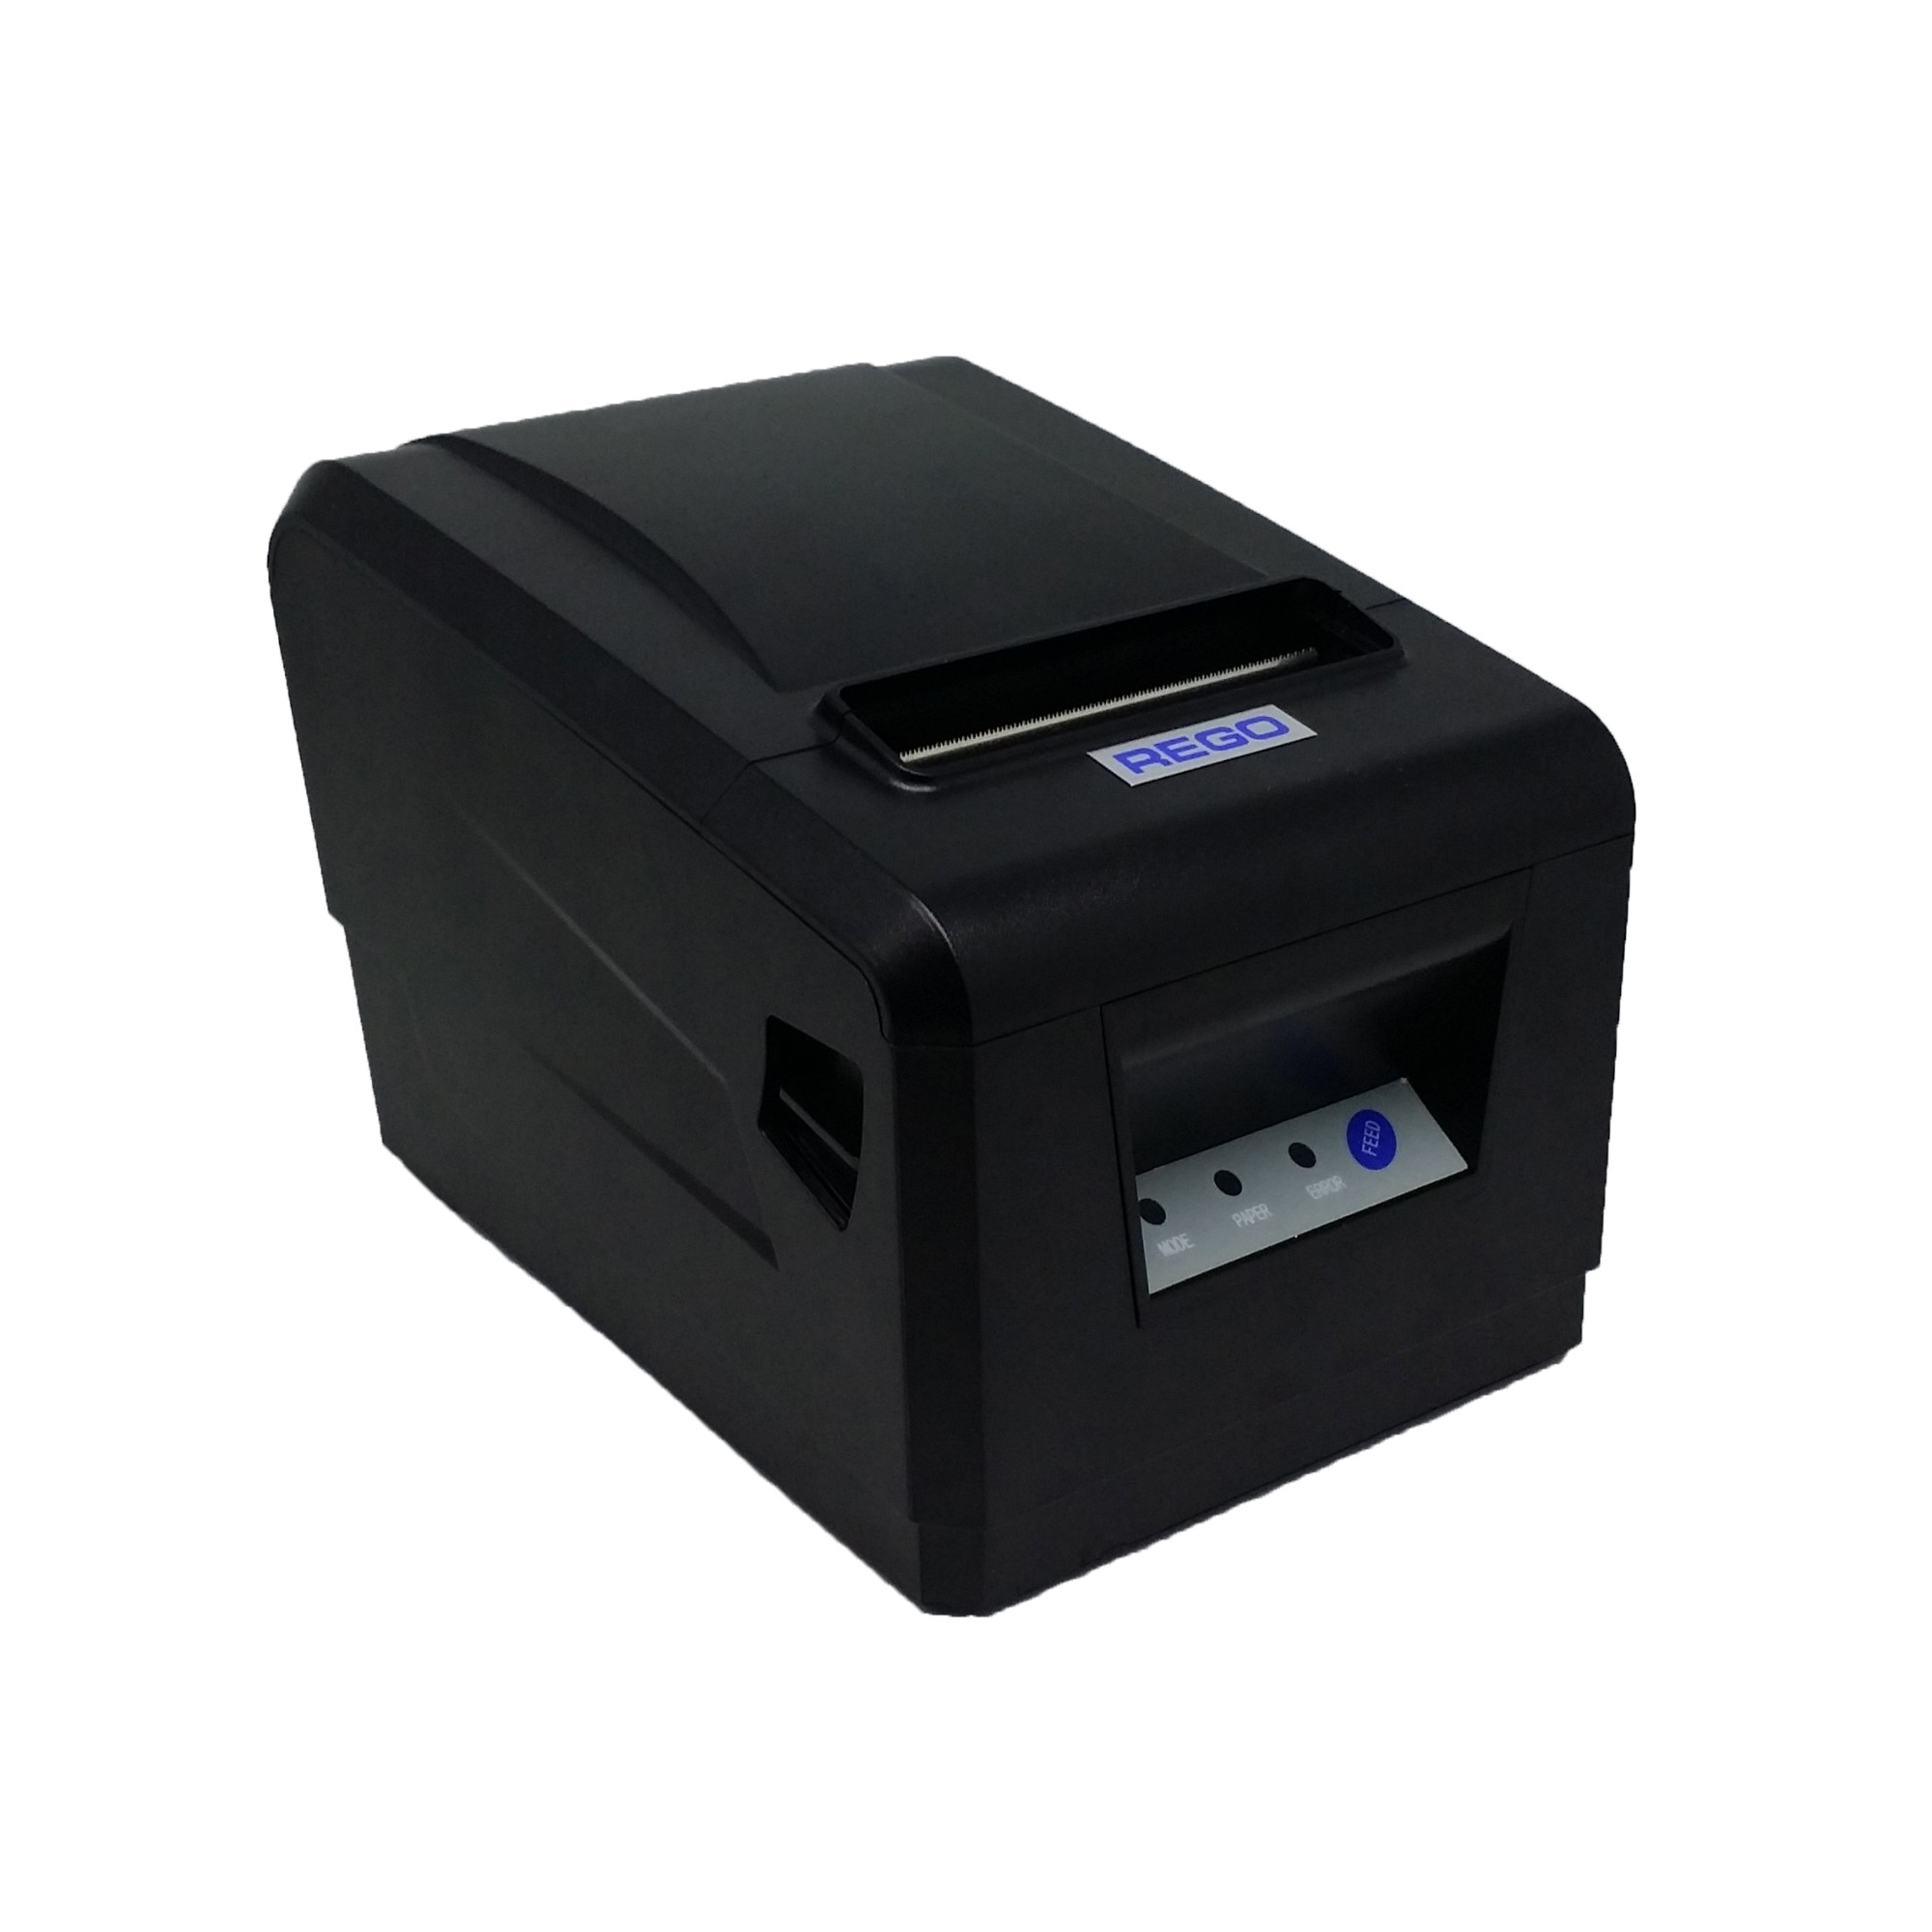 POS 80 thermal printer driver with USB WIFI Bluetooth Function